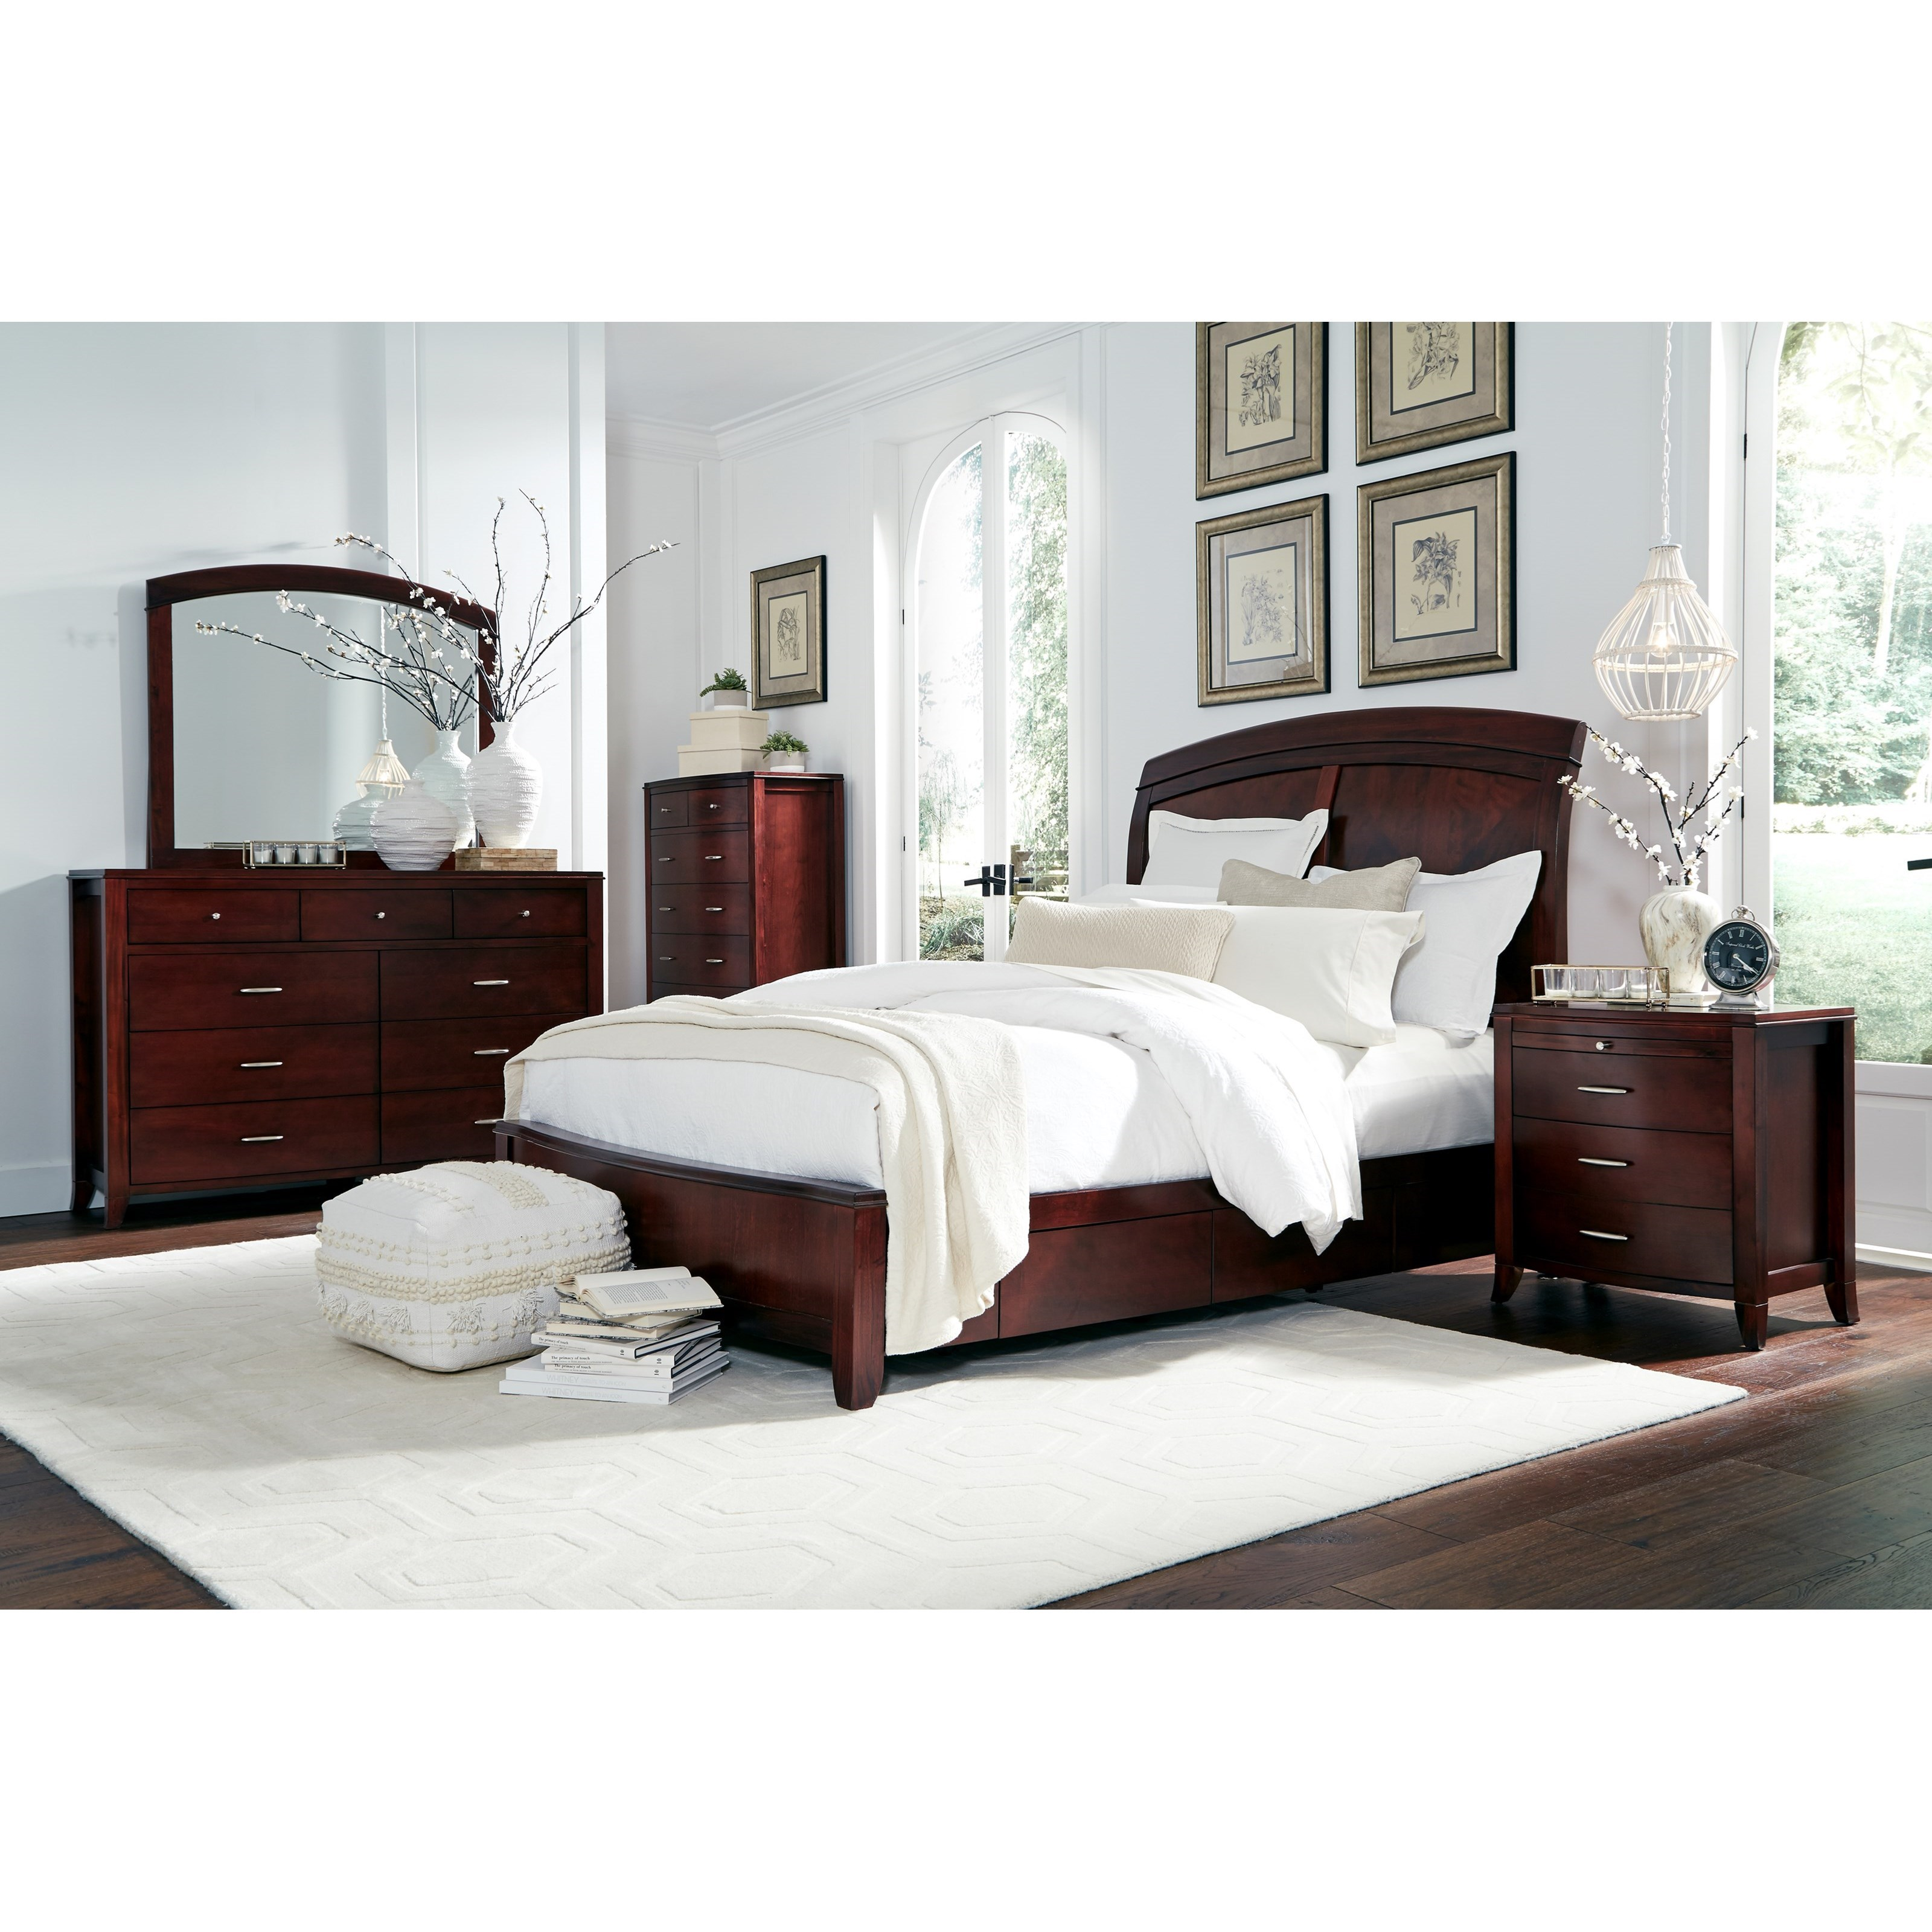 Brighton Full Bedroom Group at Sadler's Home Furnishings